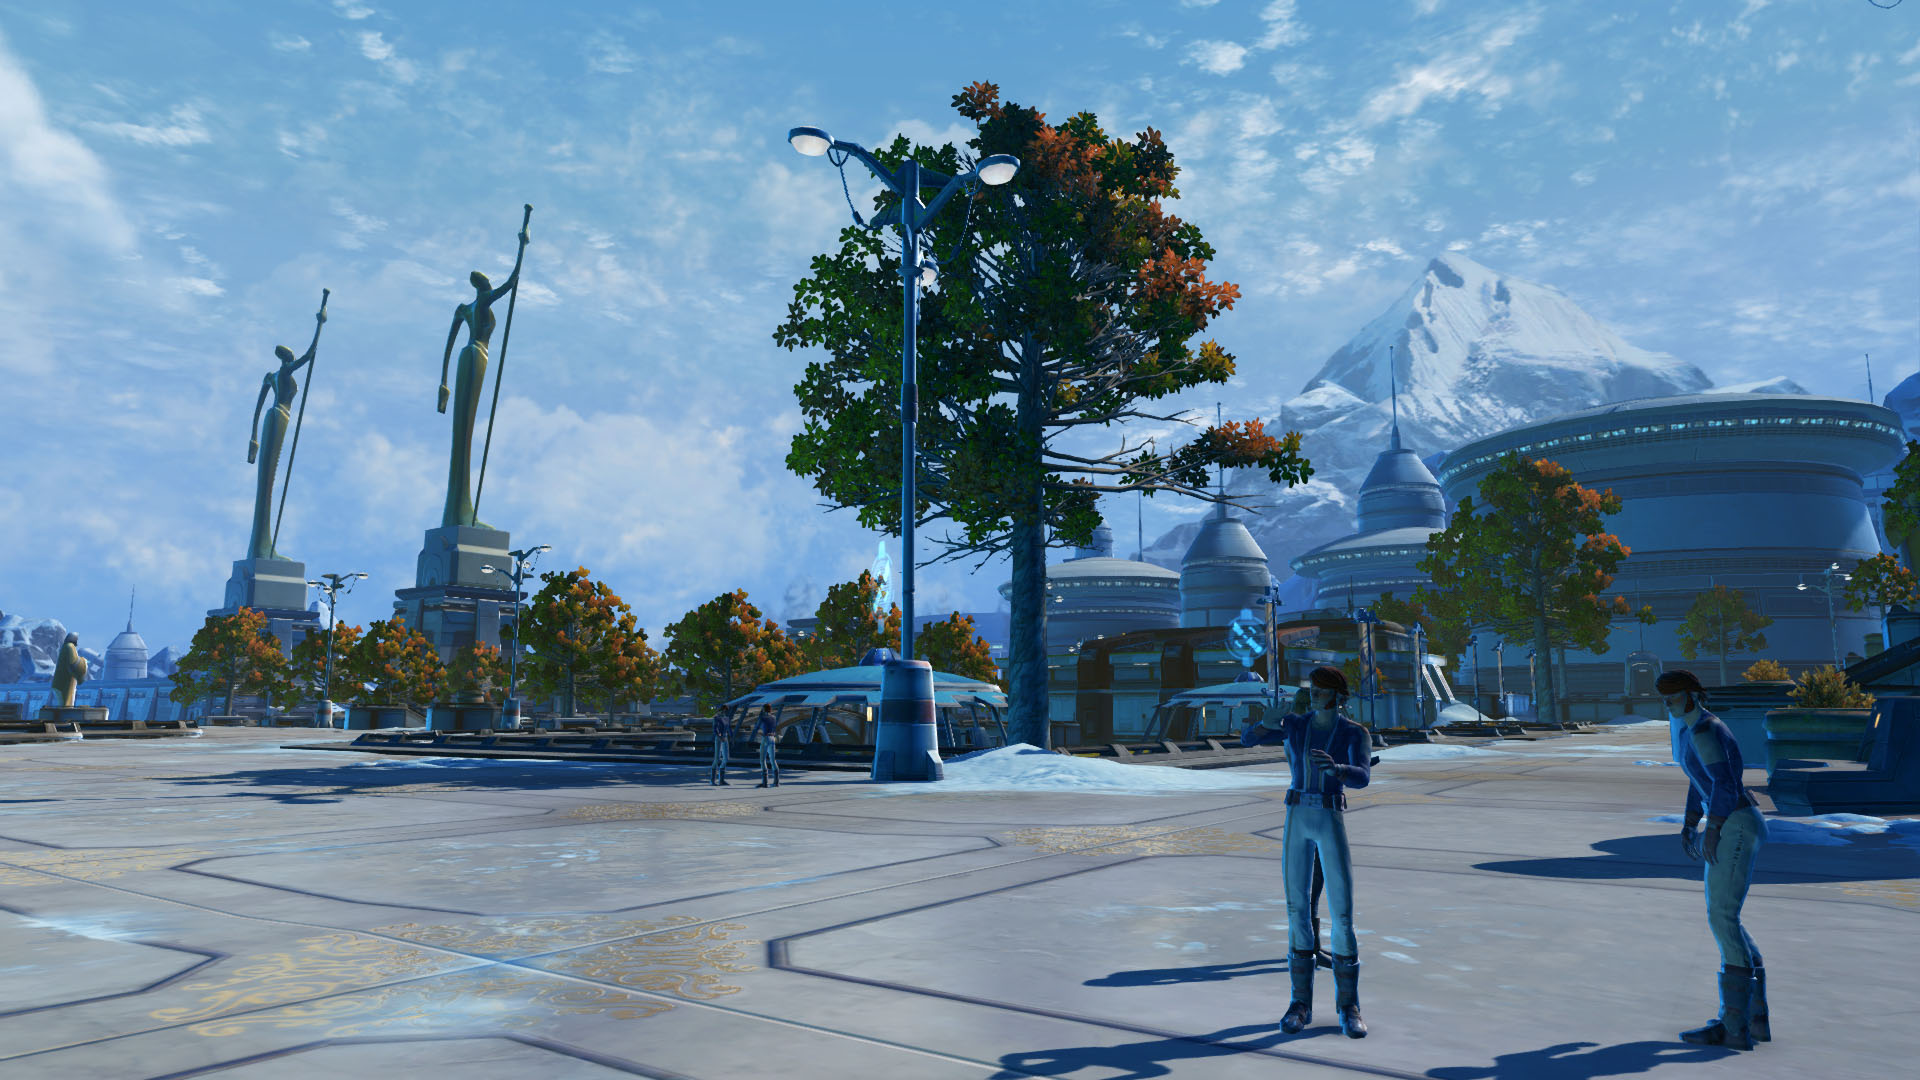 SWTOR screenshot showing the surroundings of House Organa on Alderaan: park like surroundings with chatting nobles, autumn foliaged trees and a statue